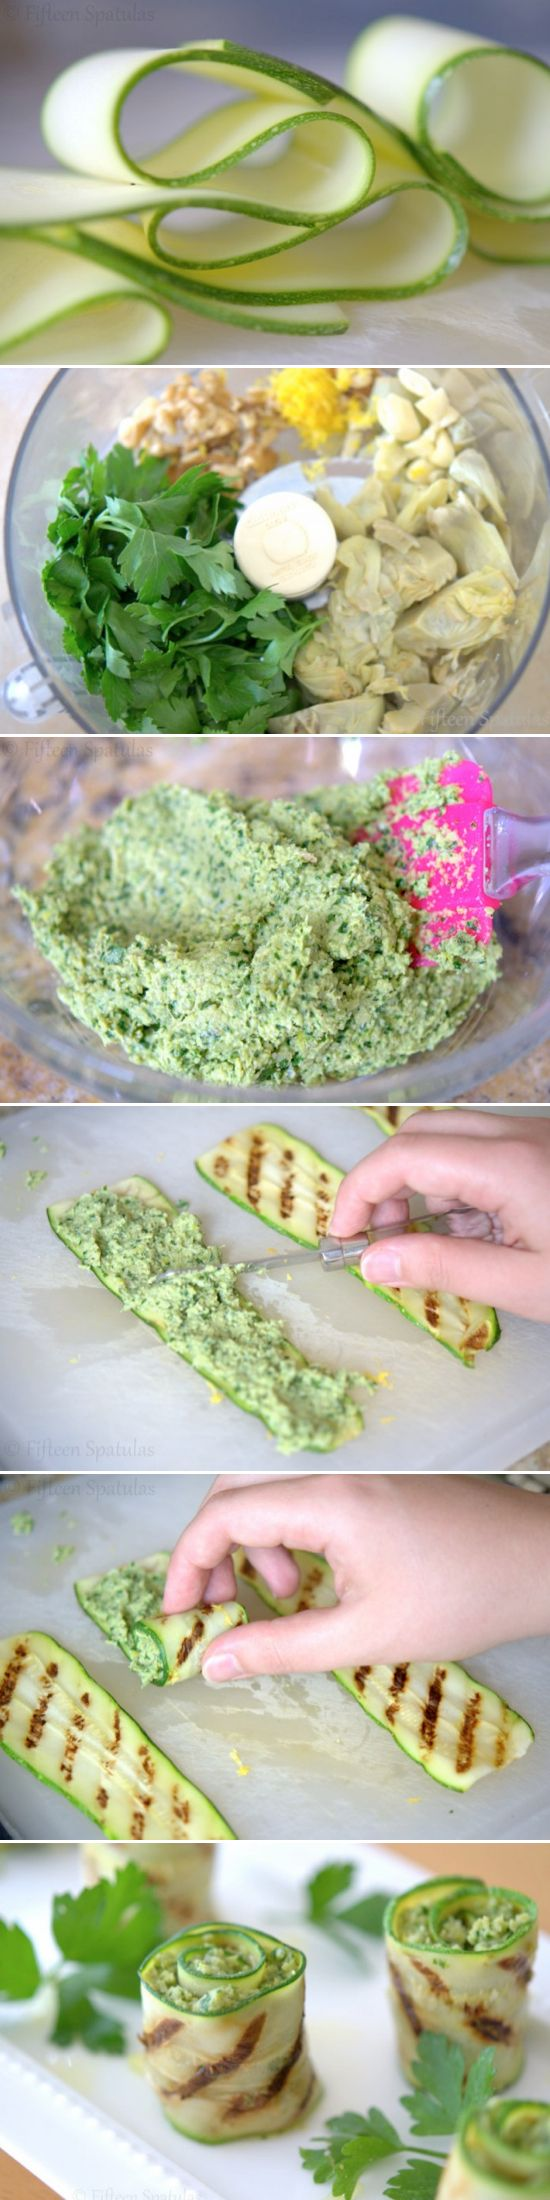 Pesto Zucchini Bites #appetizer #healthy